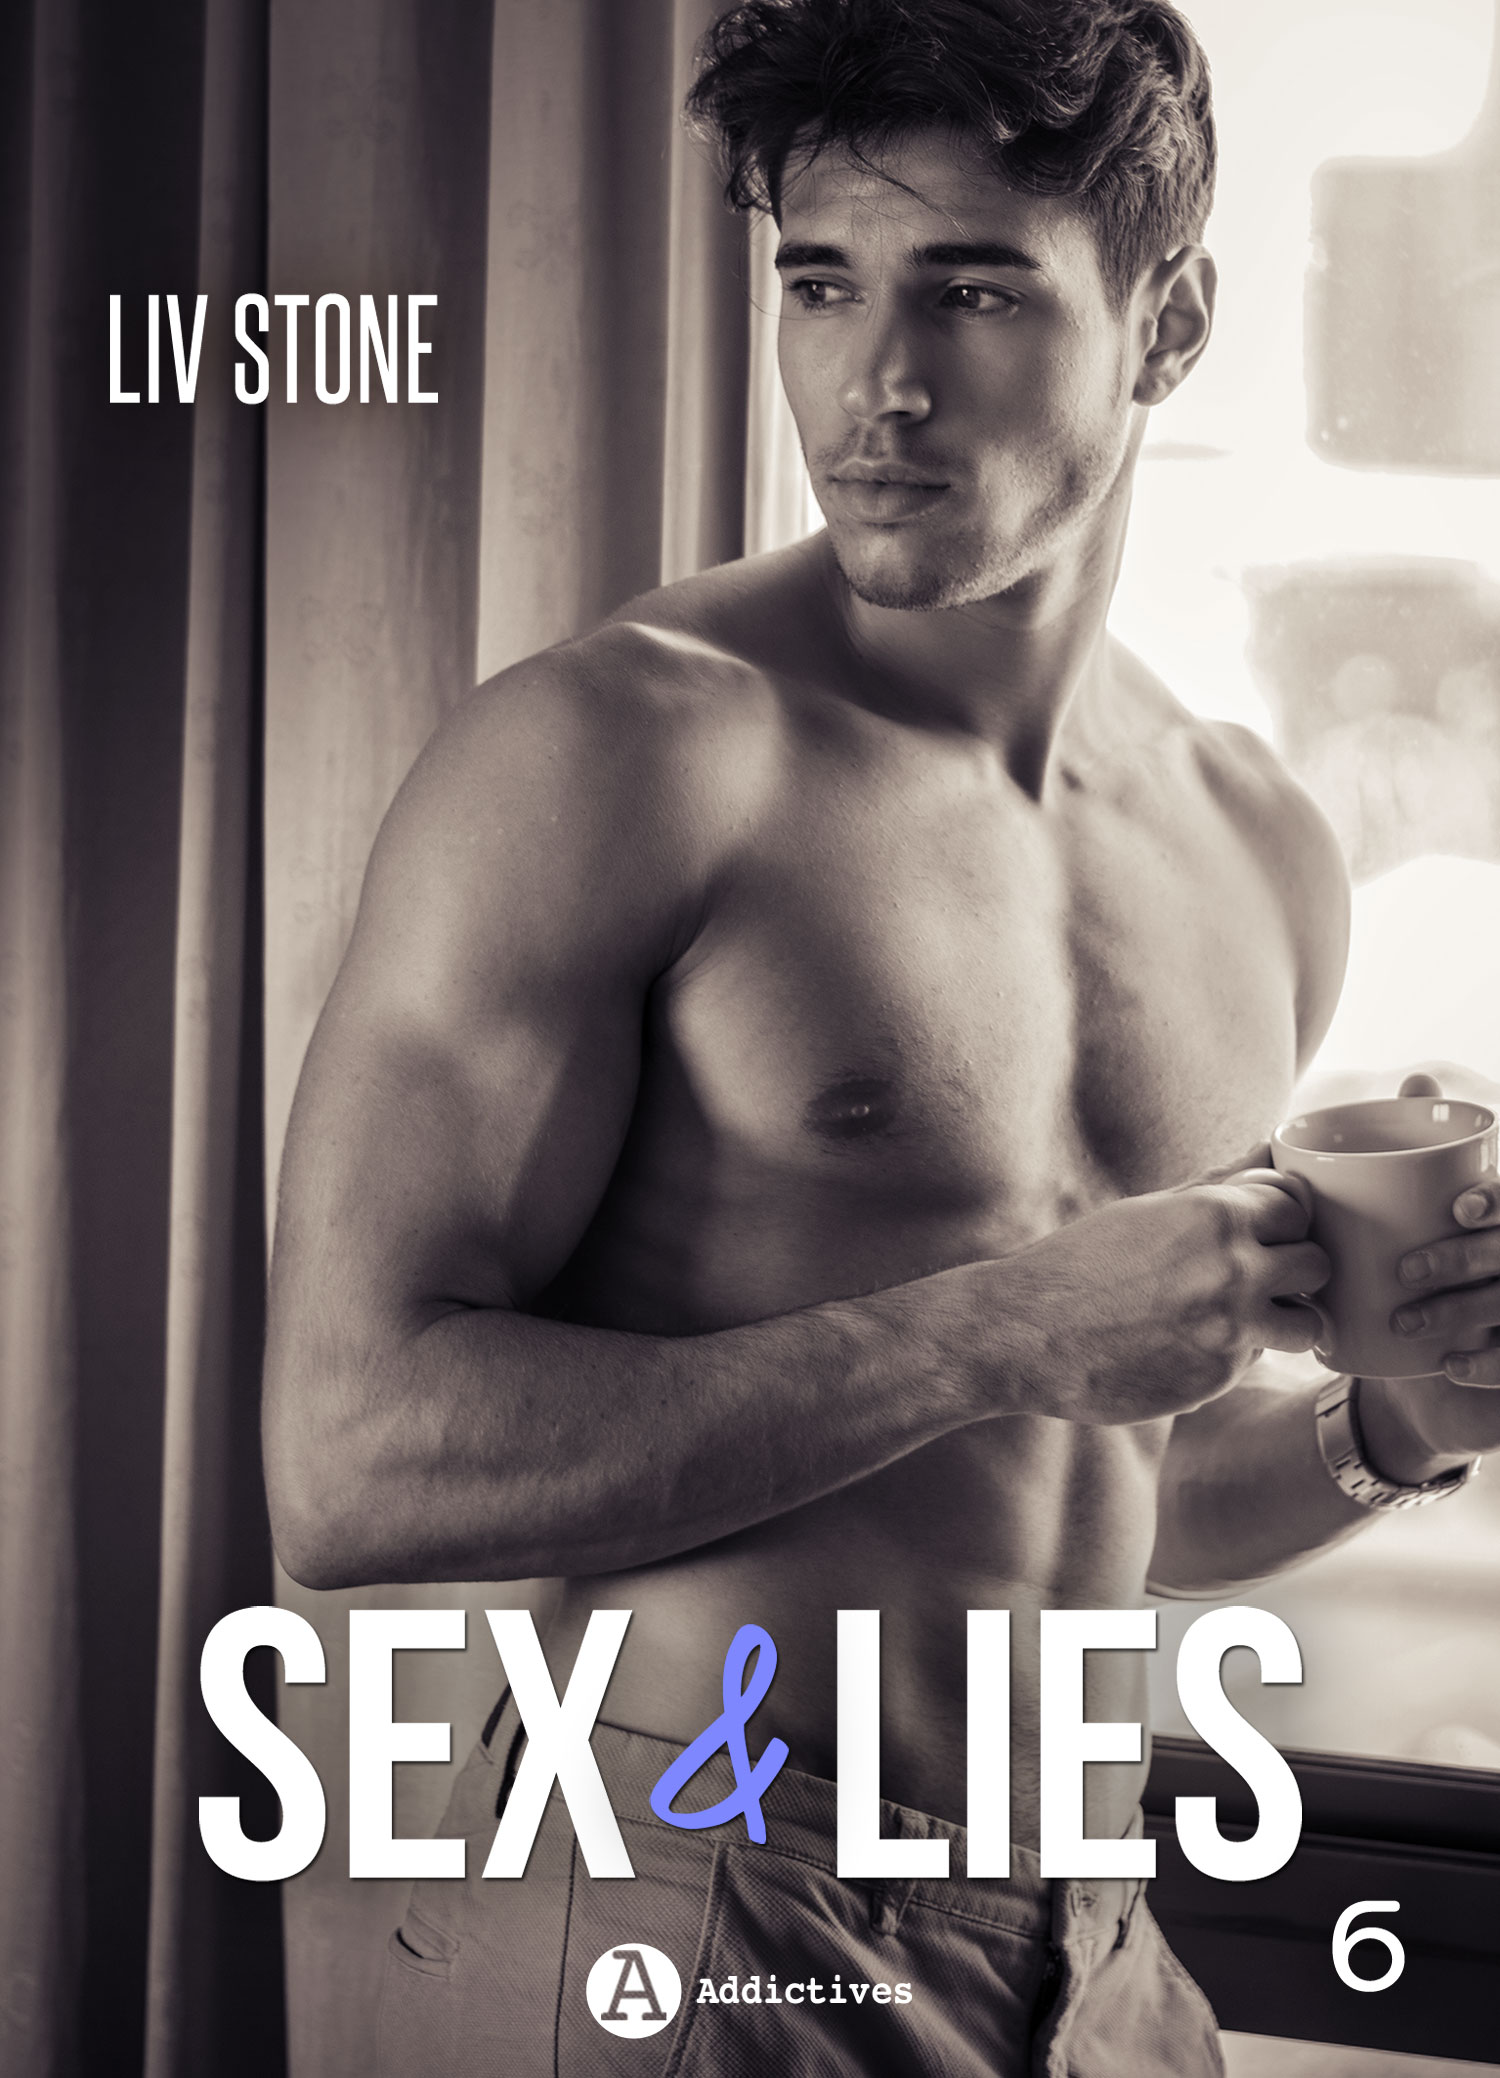 Sex & lies - Vol. 6